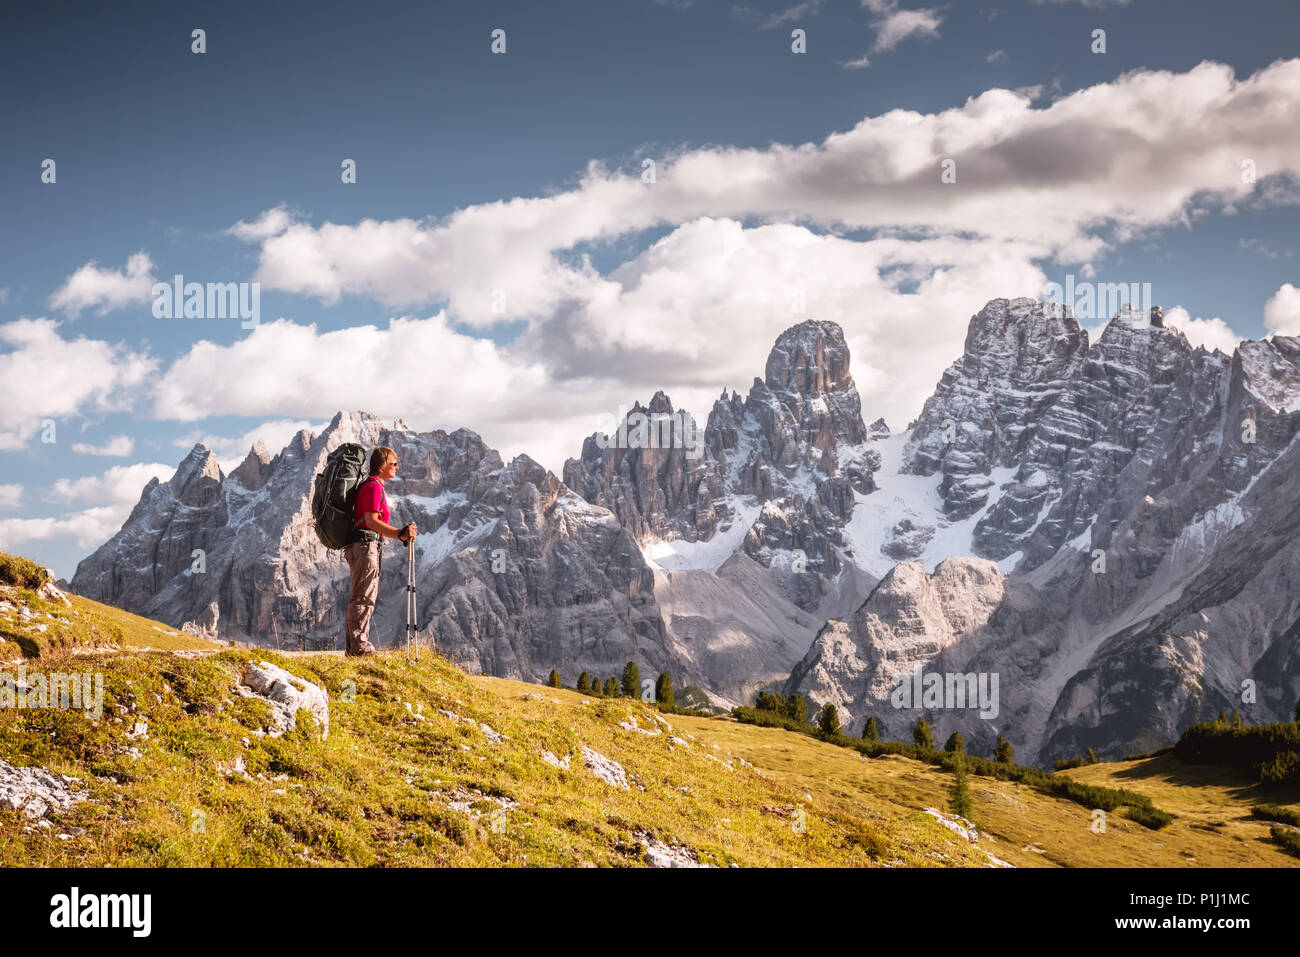 hiker in front of Alps mountains - Stock Image